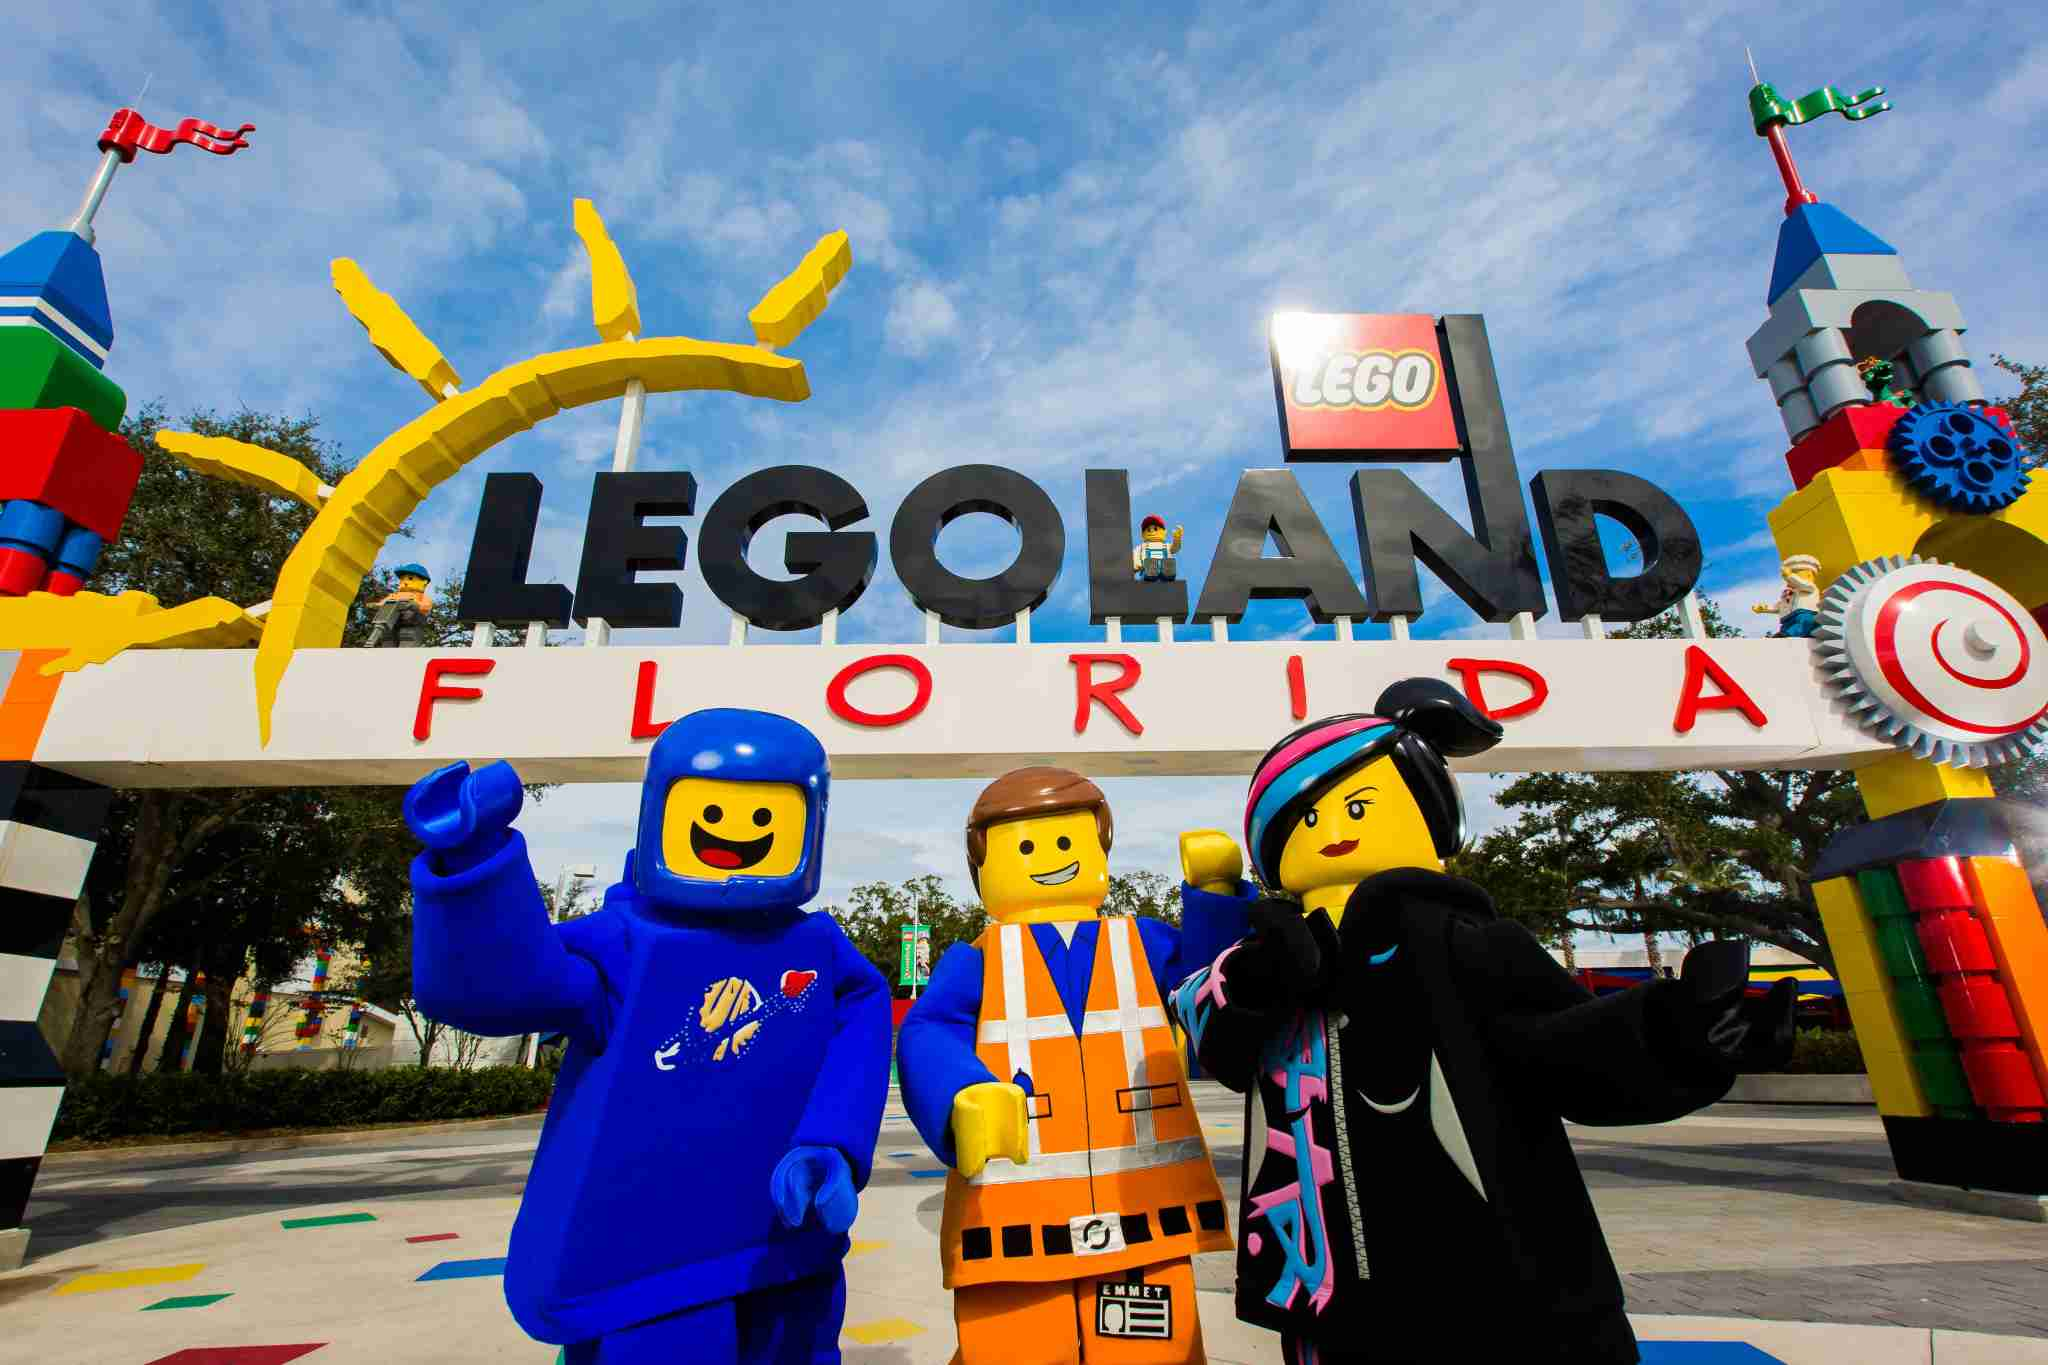 Photo by Chip Litherland for LEGOLAND Florida Resort